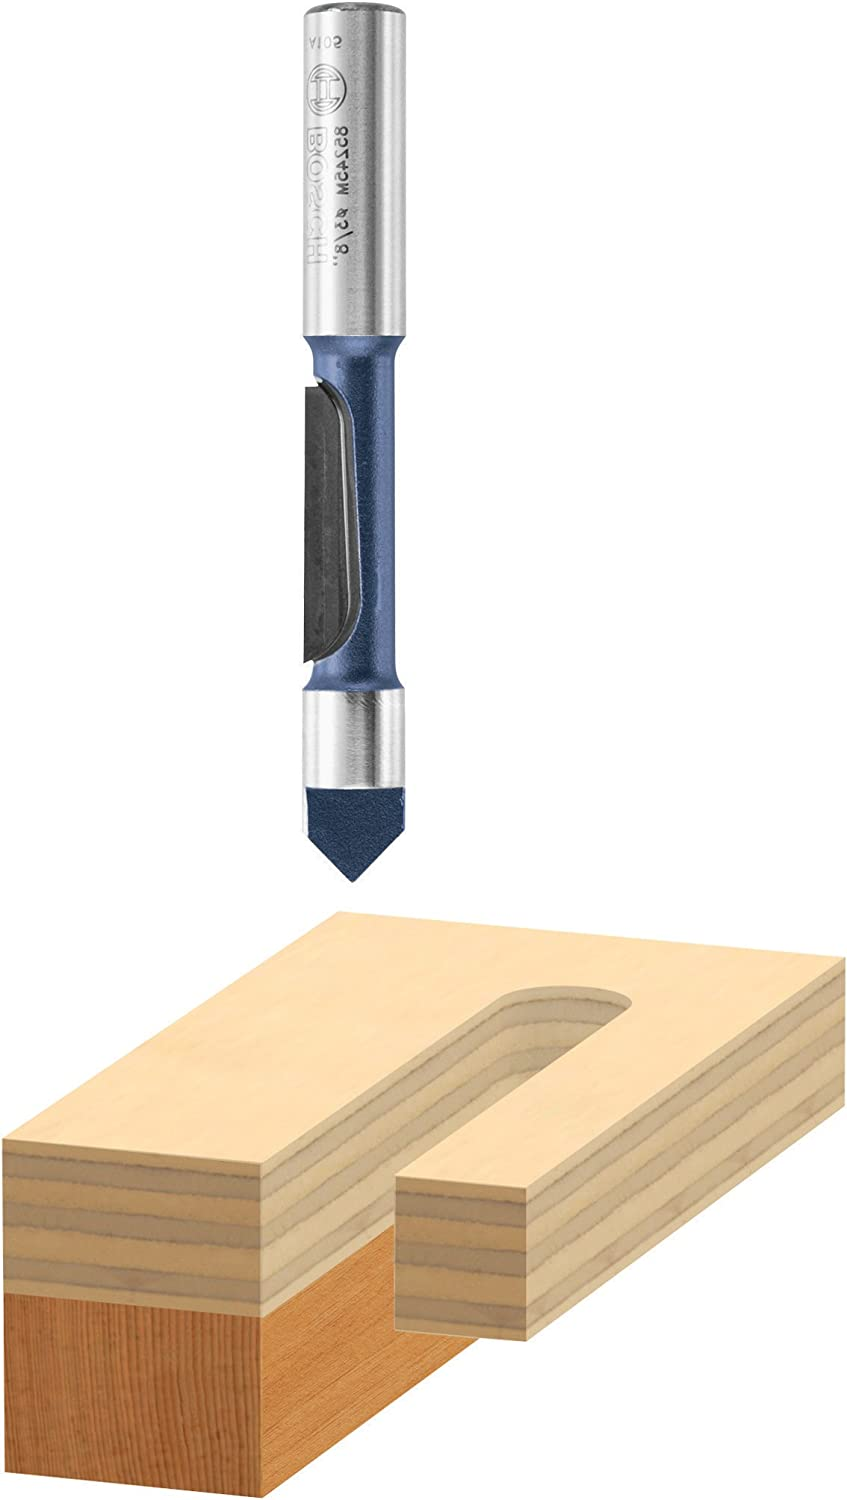 BOSCH 85246M Factory outlet 1 2 In. x 1-3 P 16 Fresno Mall Pilot 1-Flute Tipped Carbide